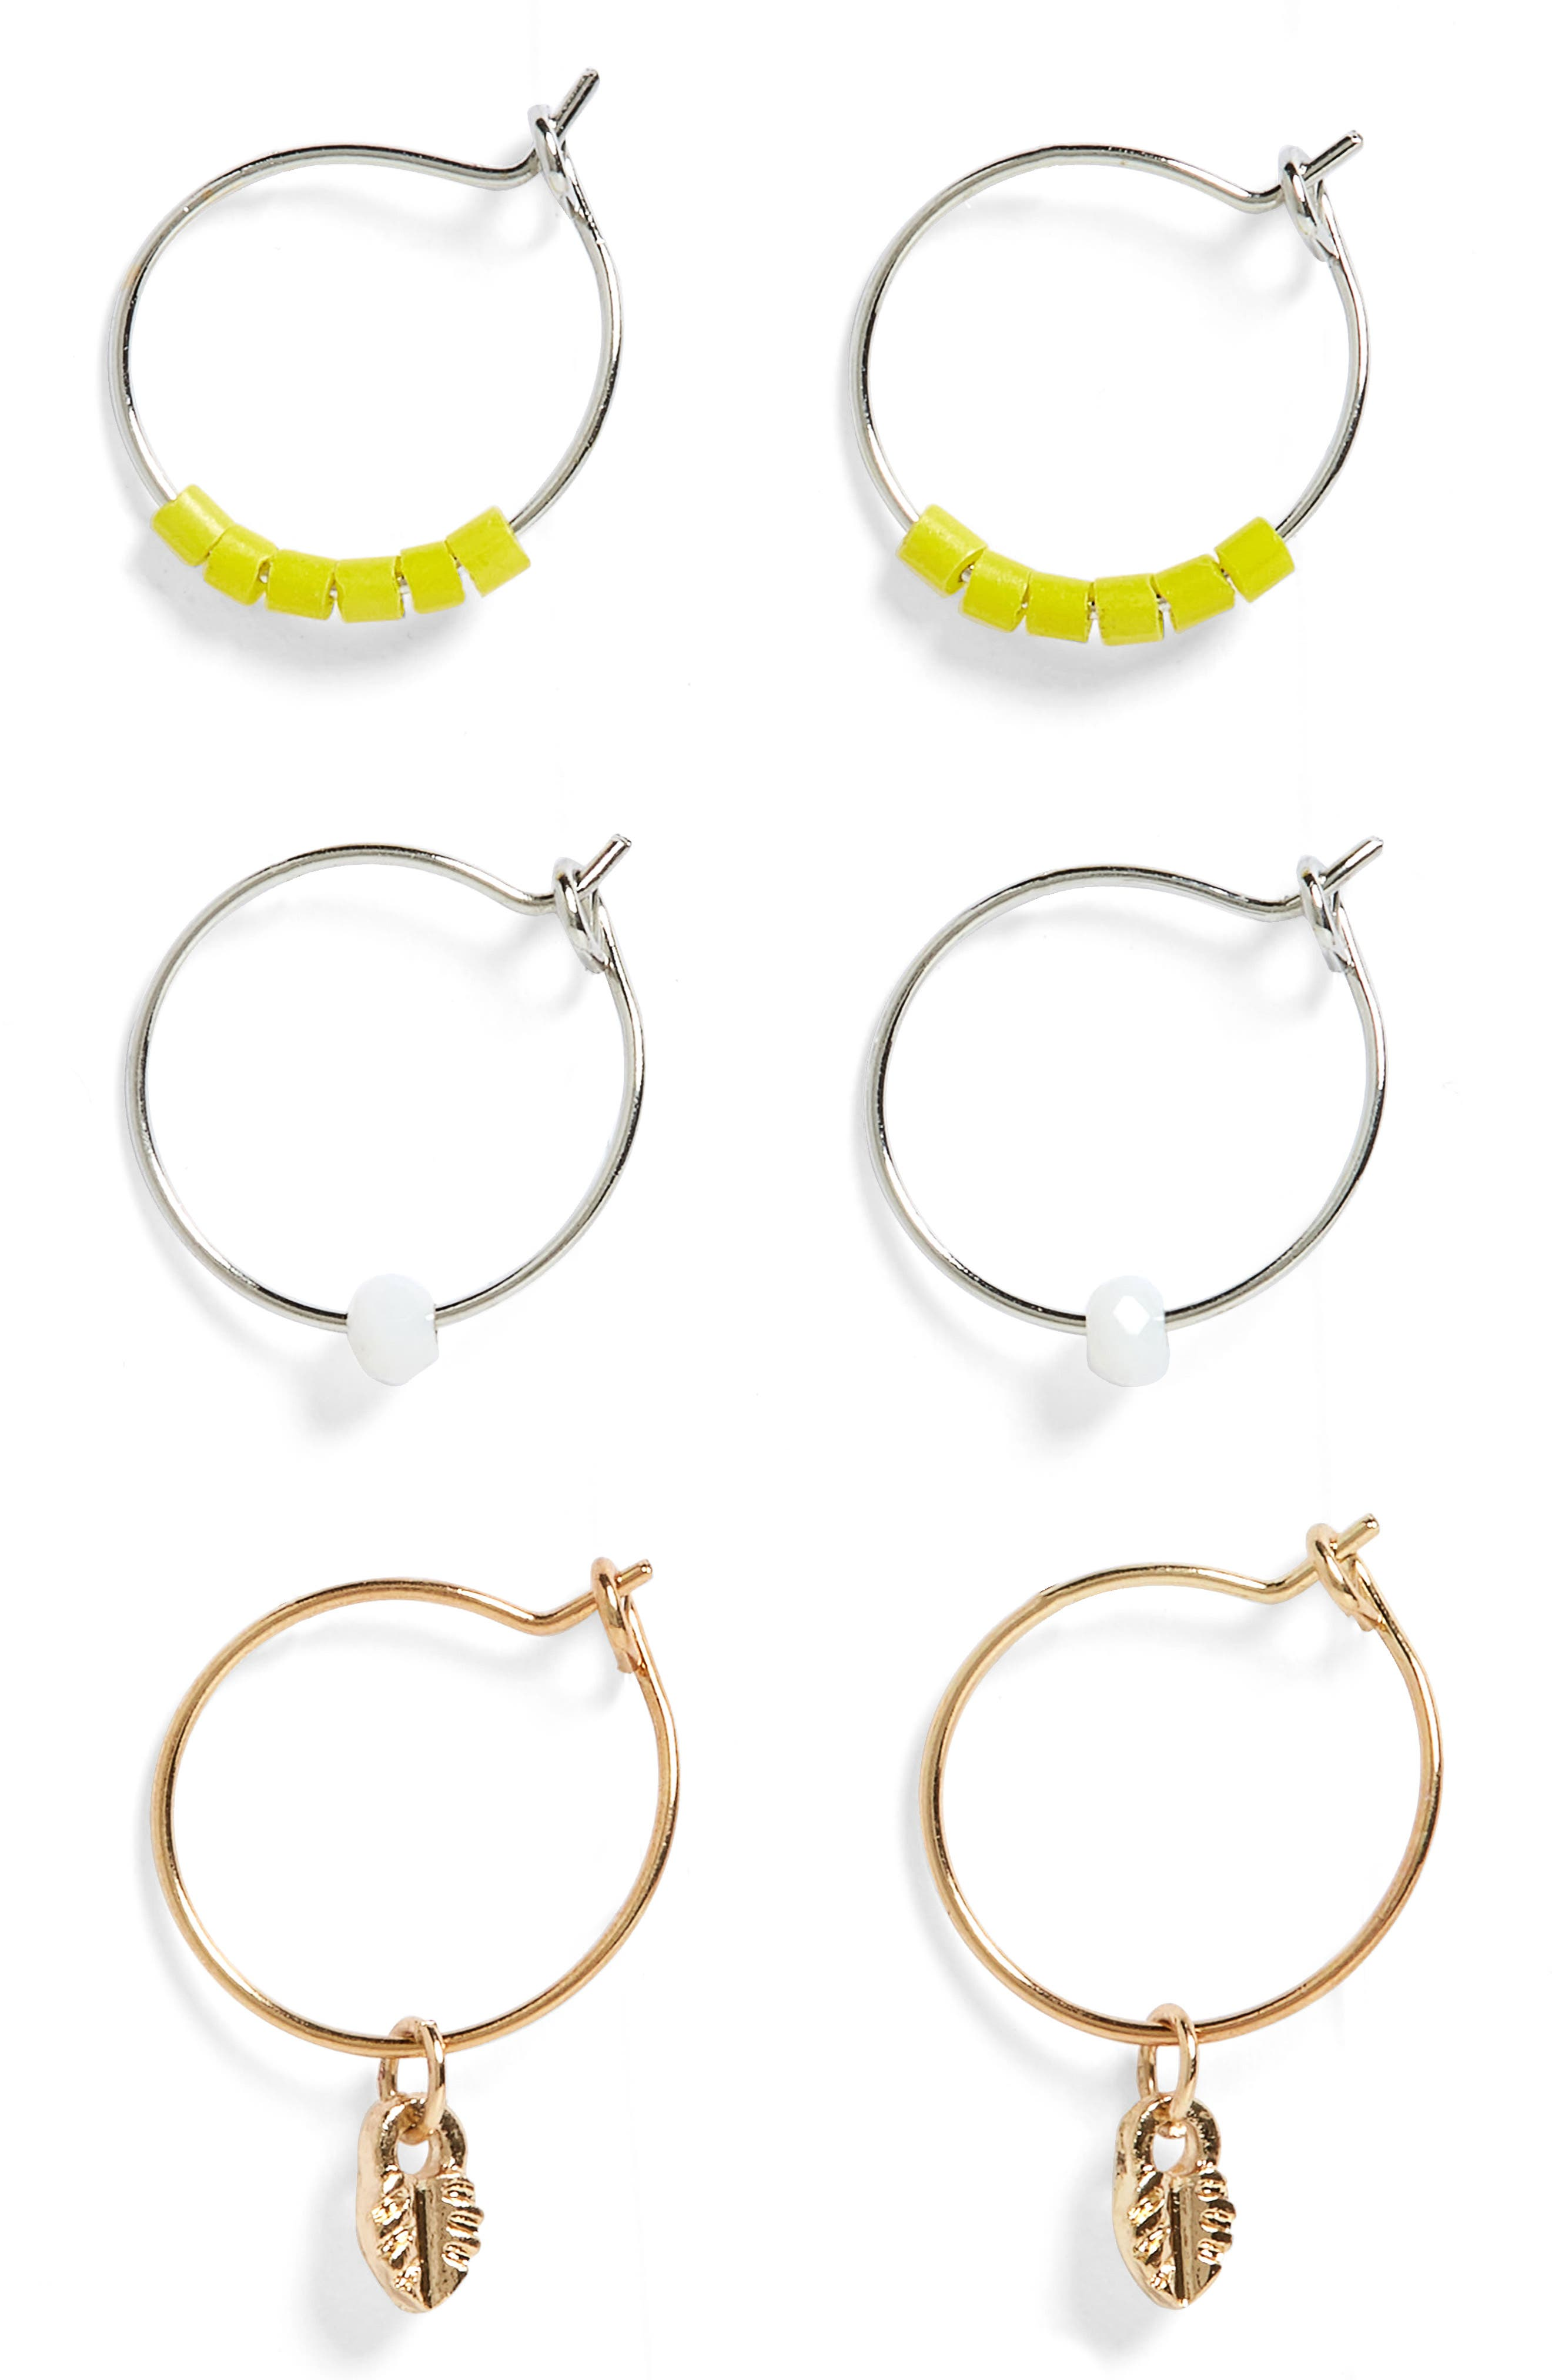 Set of 3 Charm Hoop Earrings,                             Main thumbnail 1, color,                             000